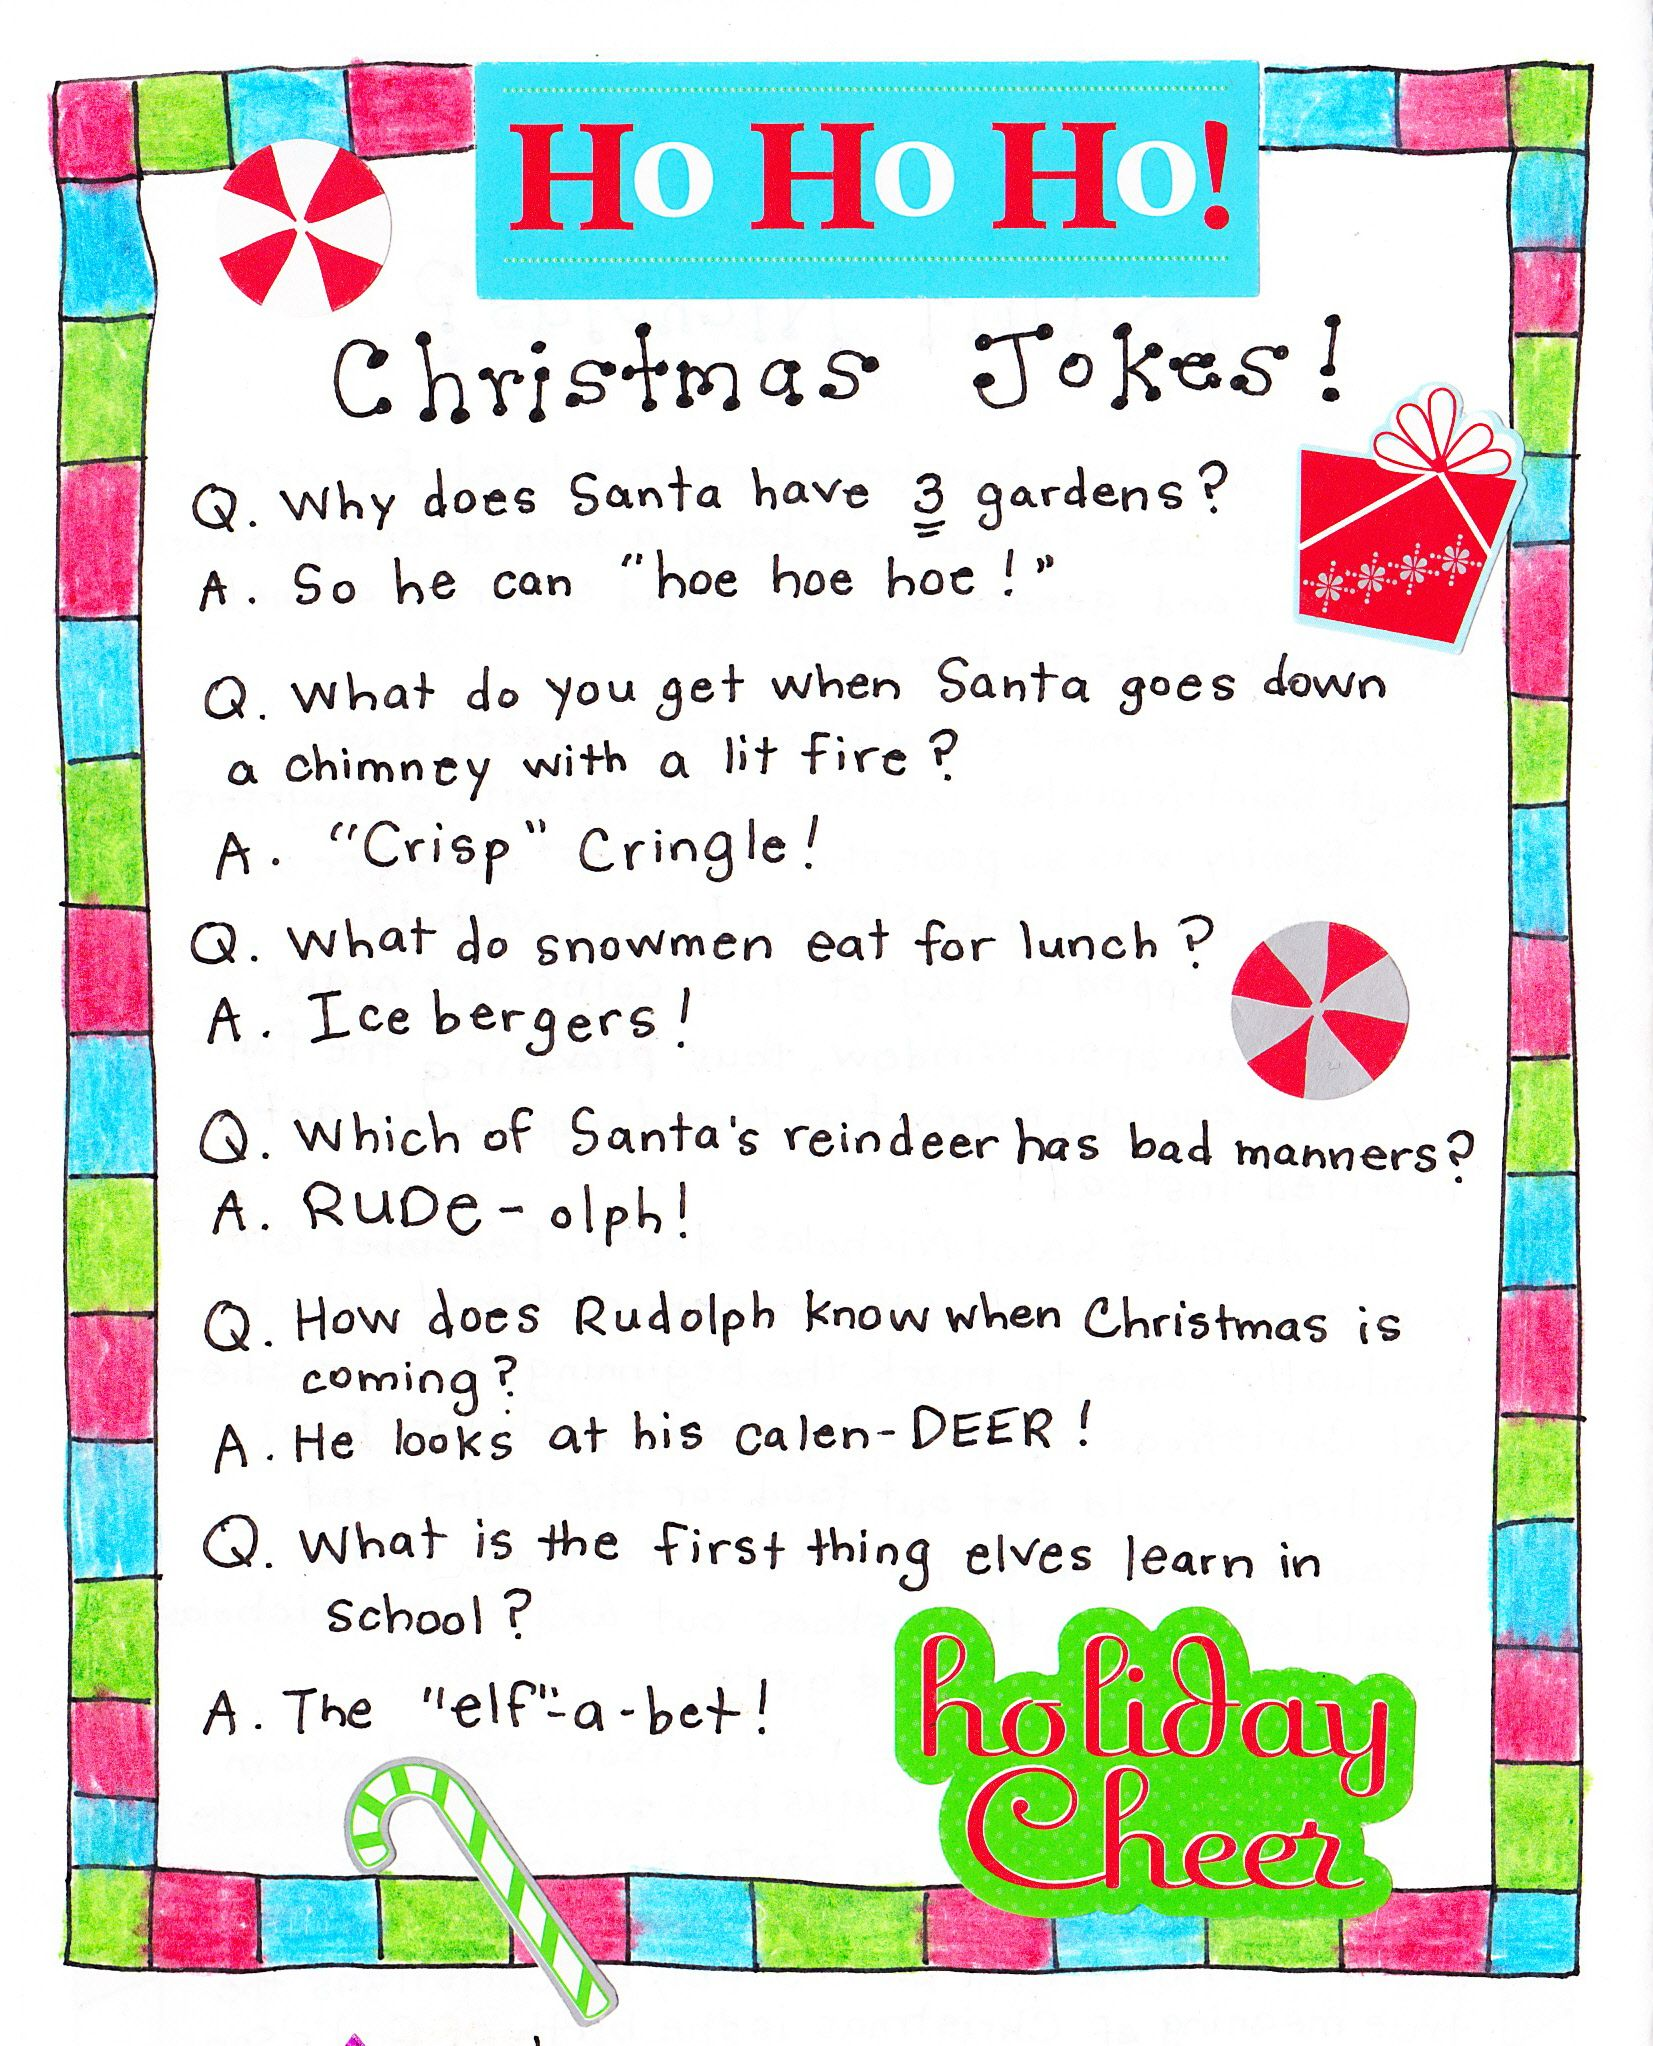 christmas jokes for the kids - Childrens Christmas Jokes